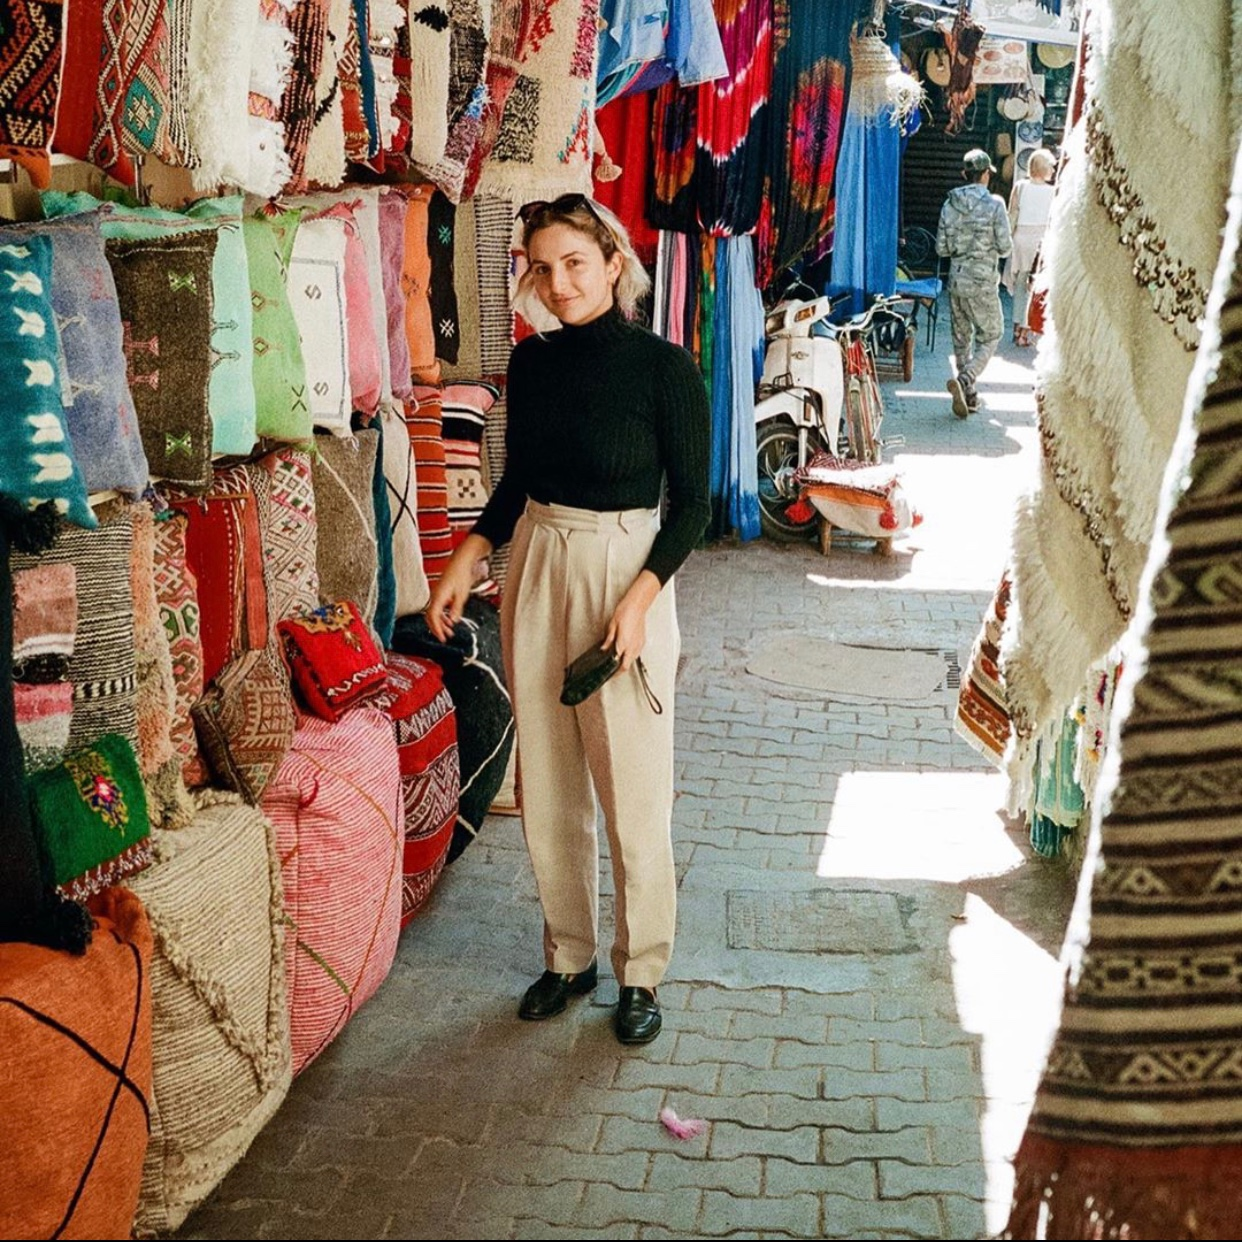 Shayna Goldberg's Work Trip To Marrakech